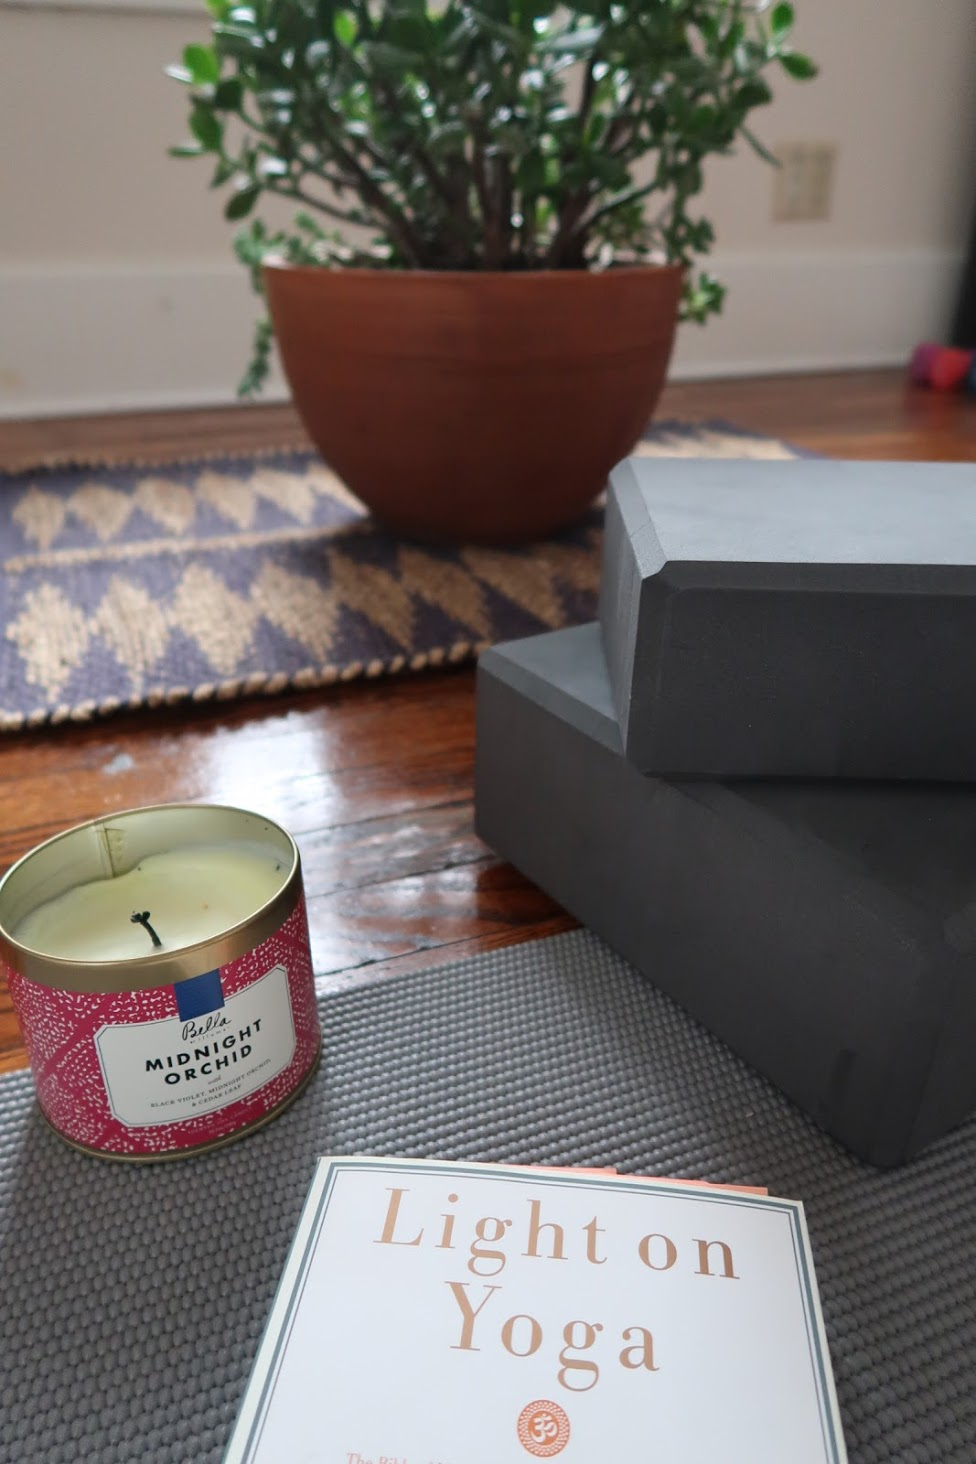 light on yoga block candle jade succulent yogi mat